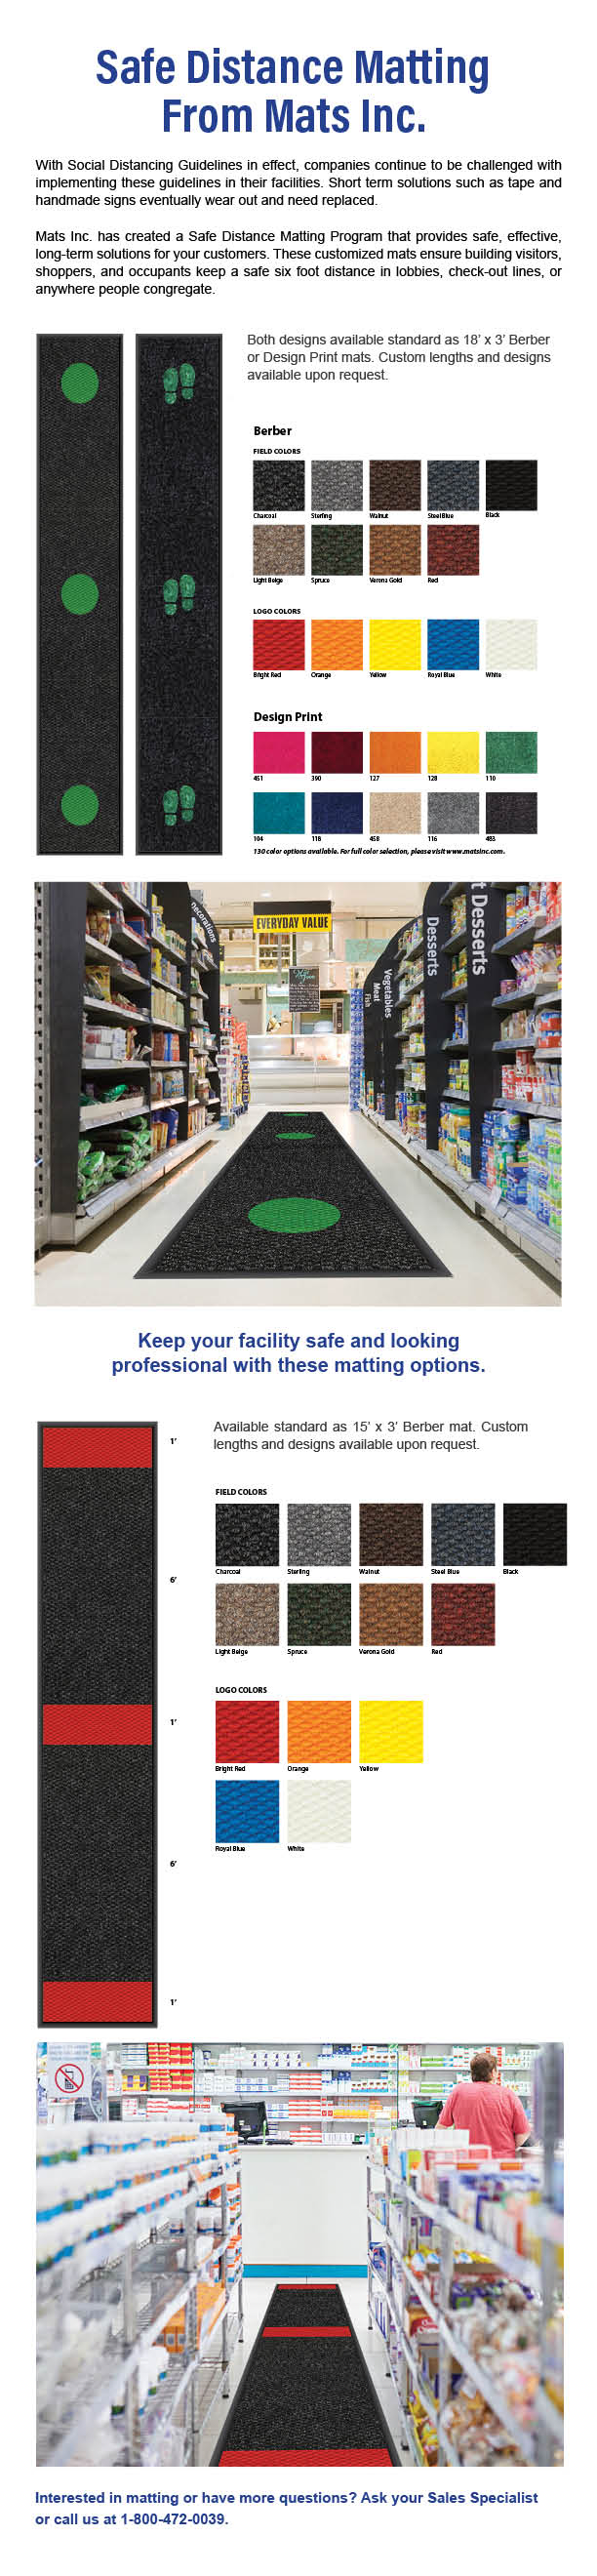 4-20 safe distance matting program